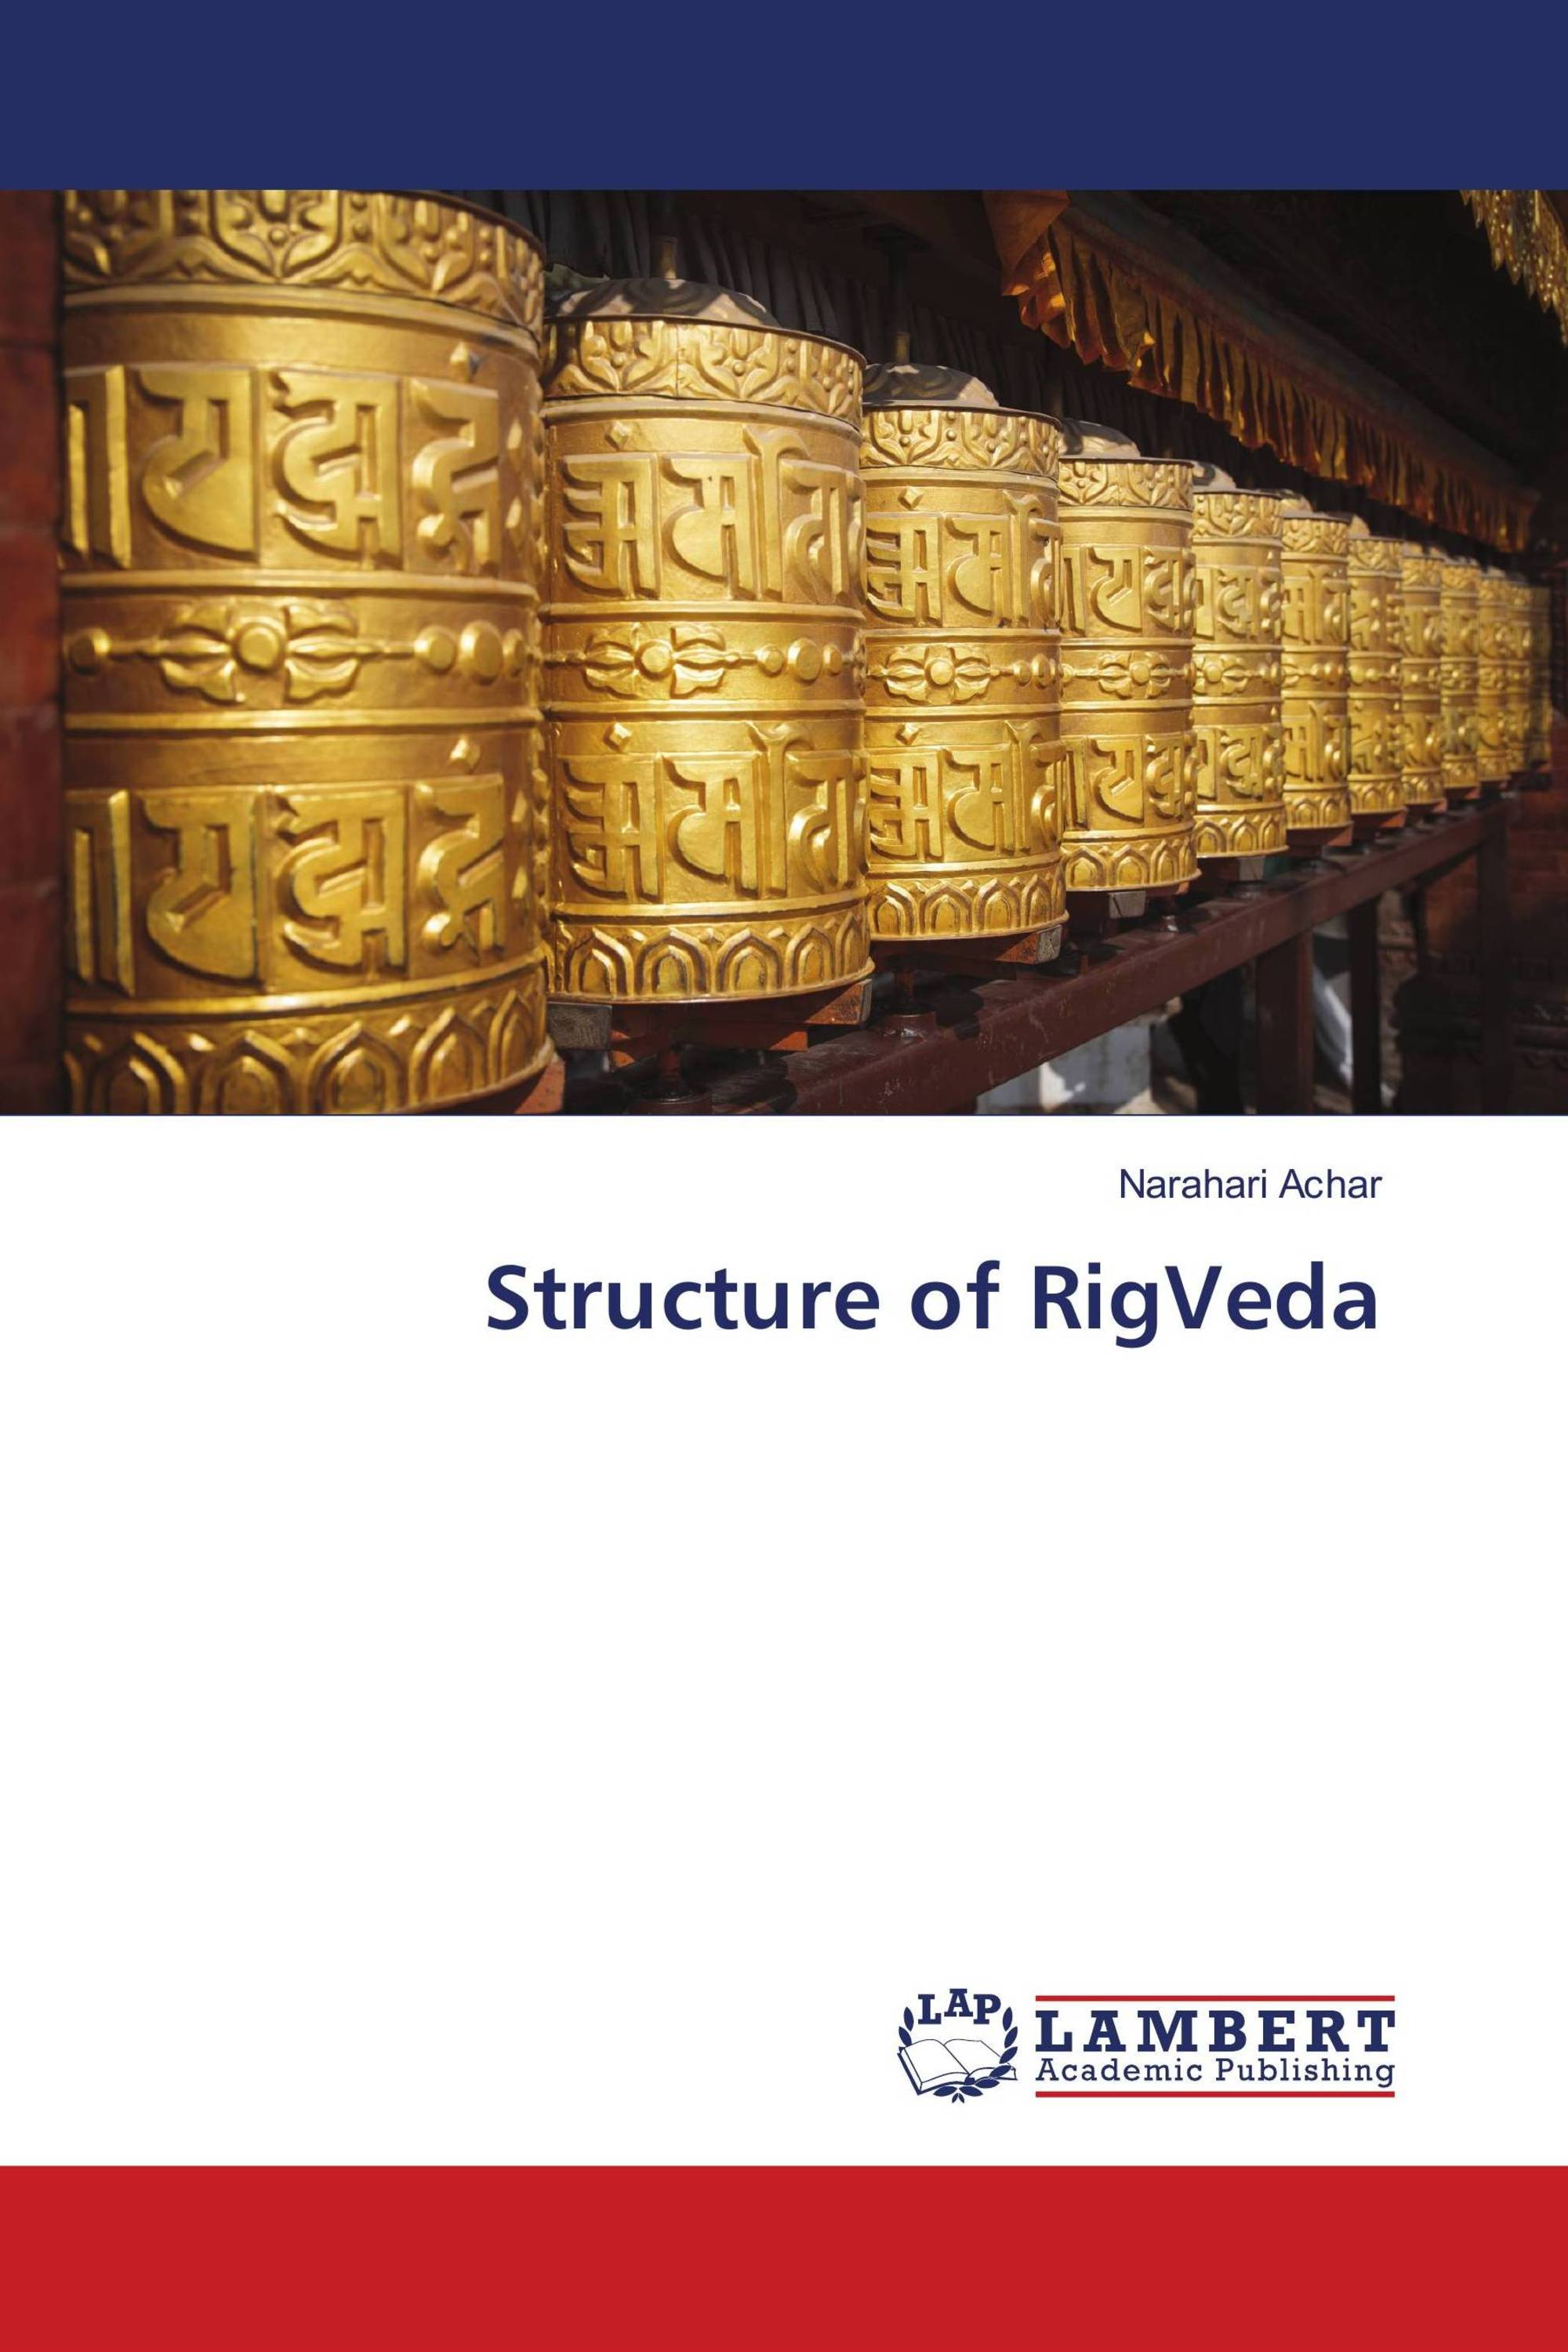 Structure of RigVeda